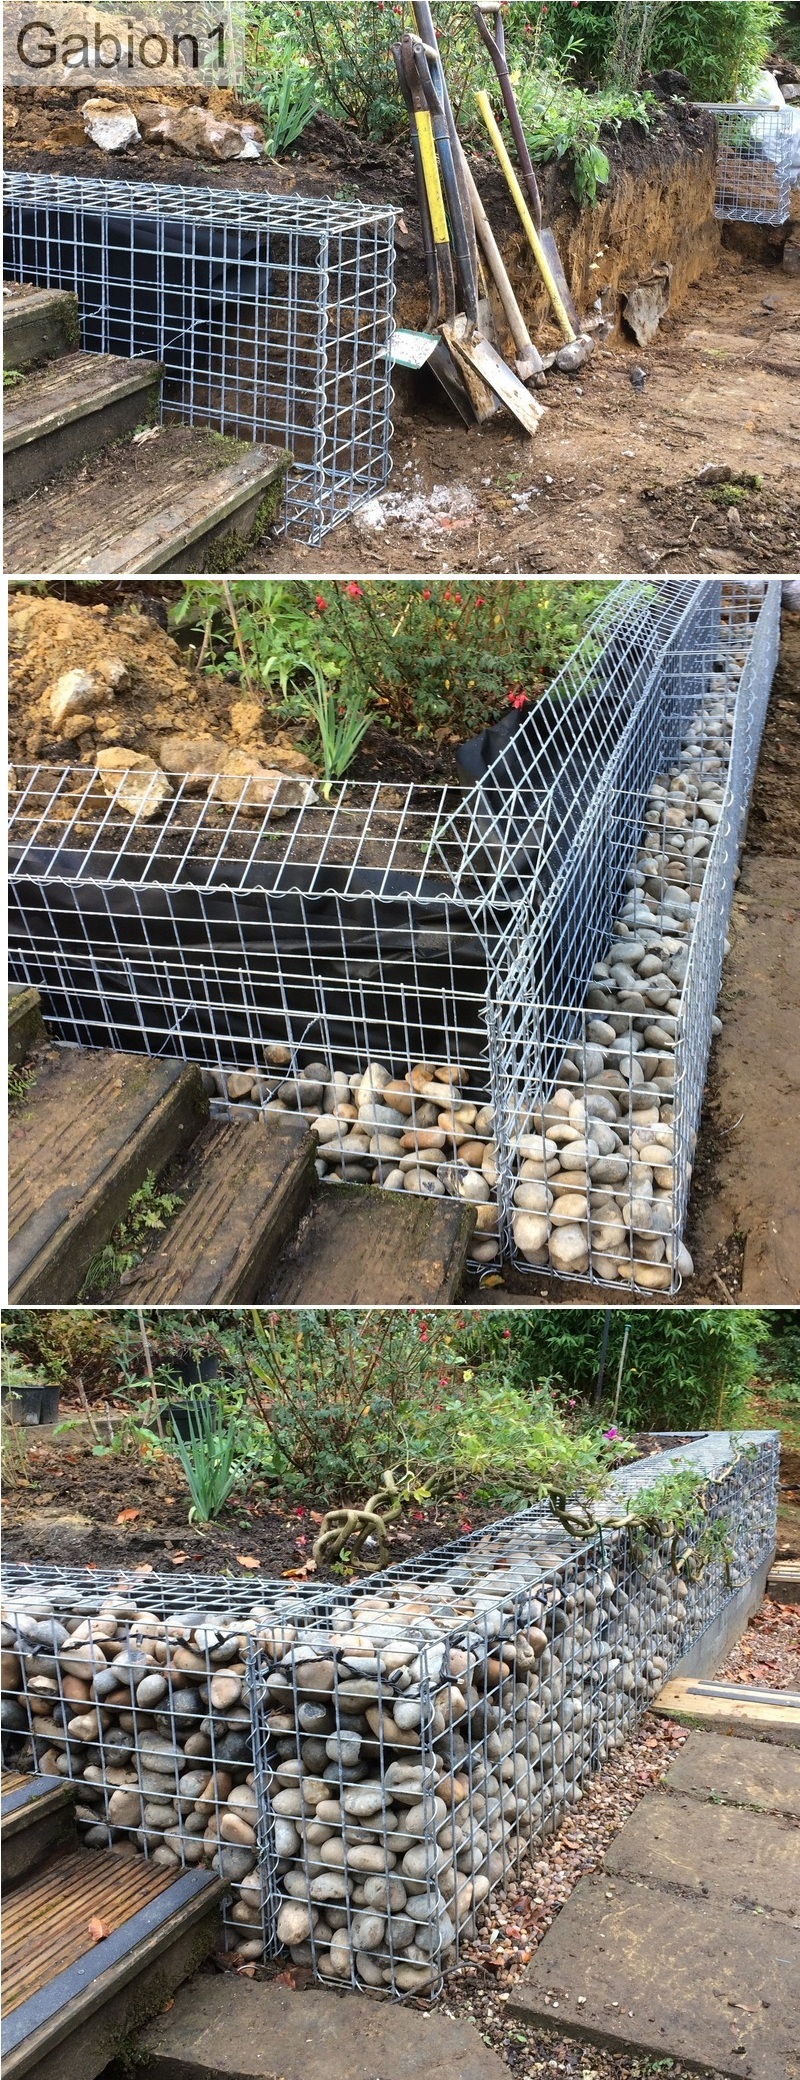 gabion construction sequence